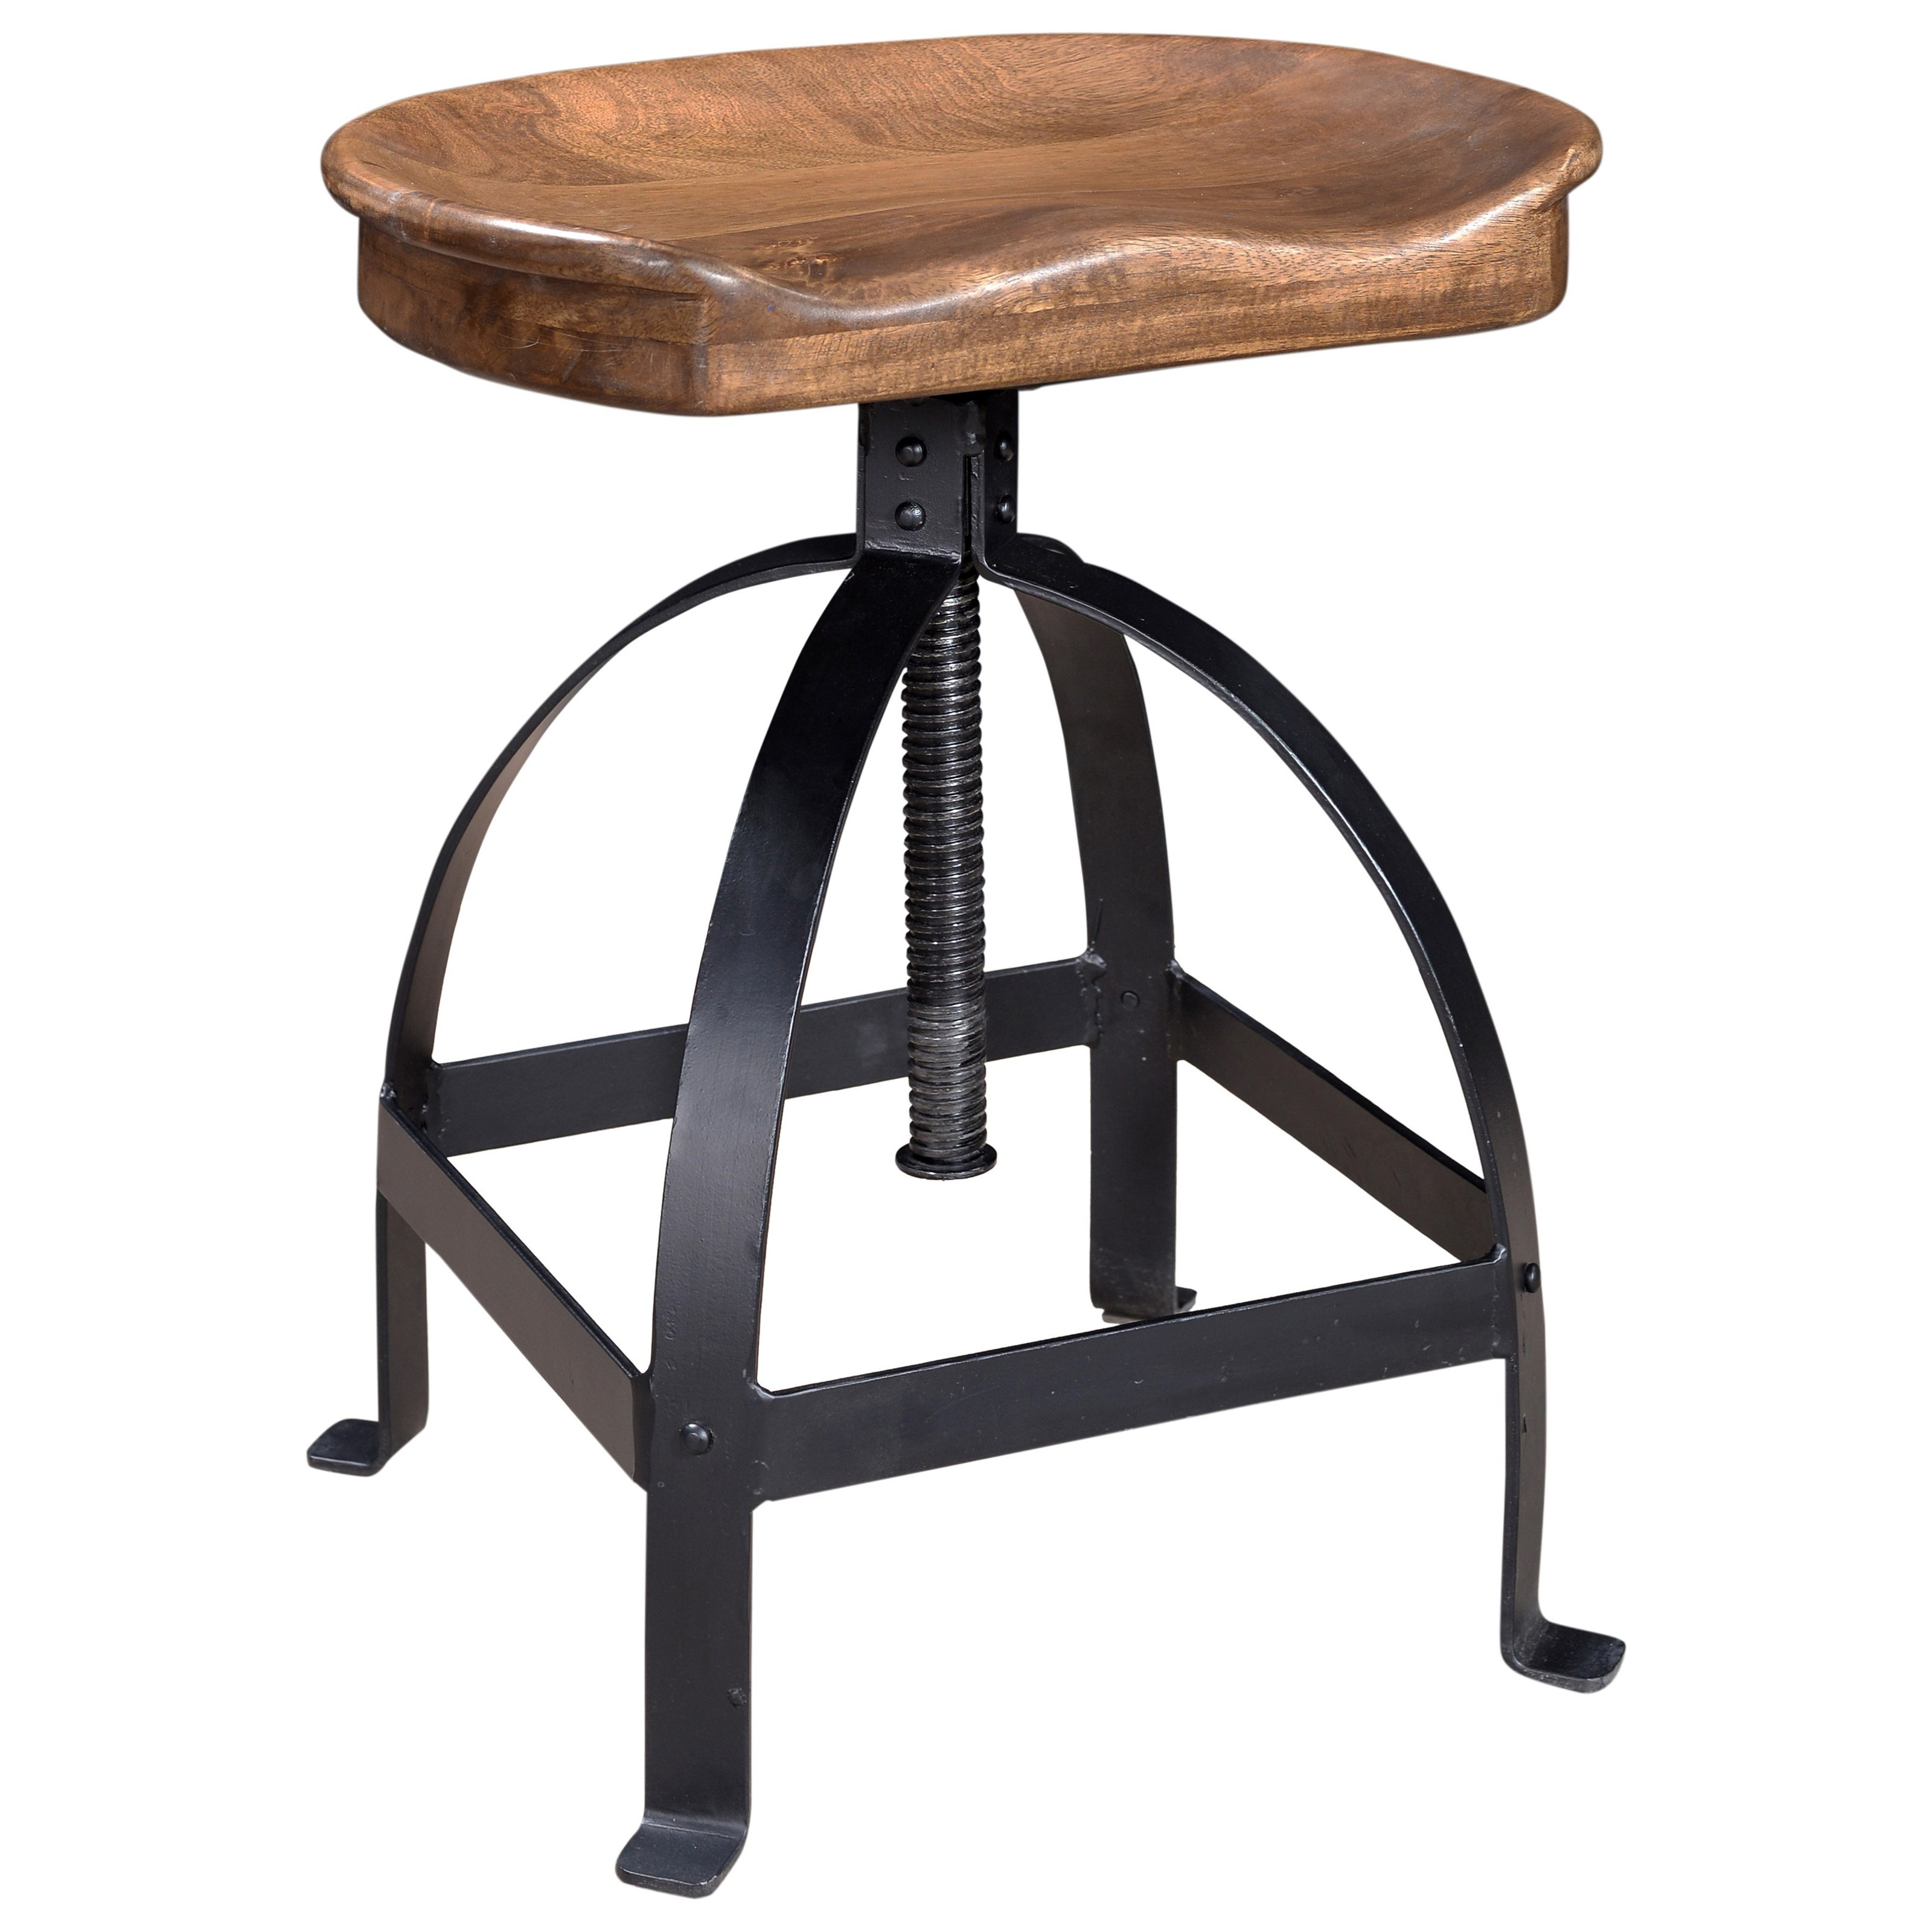 C2C Accents Adjustable Stool by C2C at Walker's Furniture